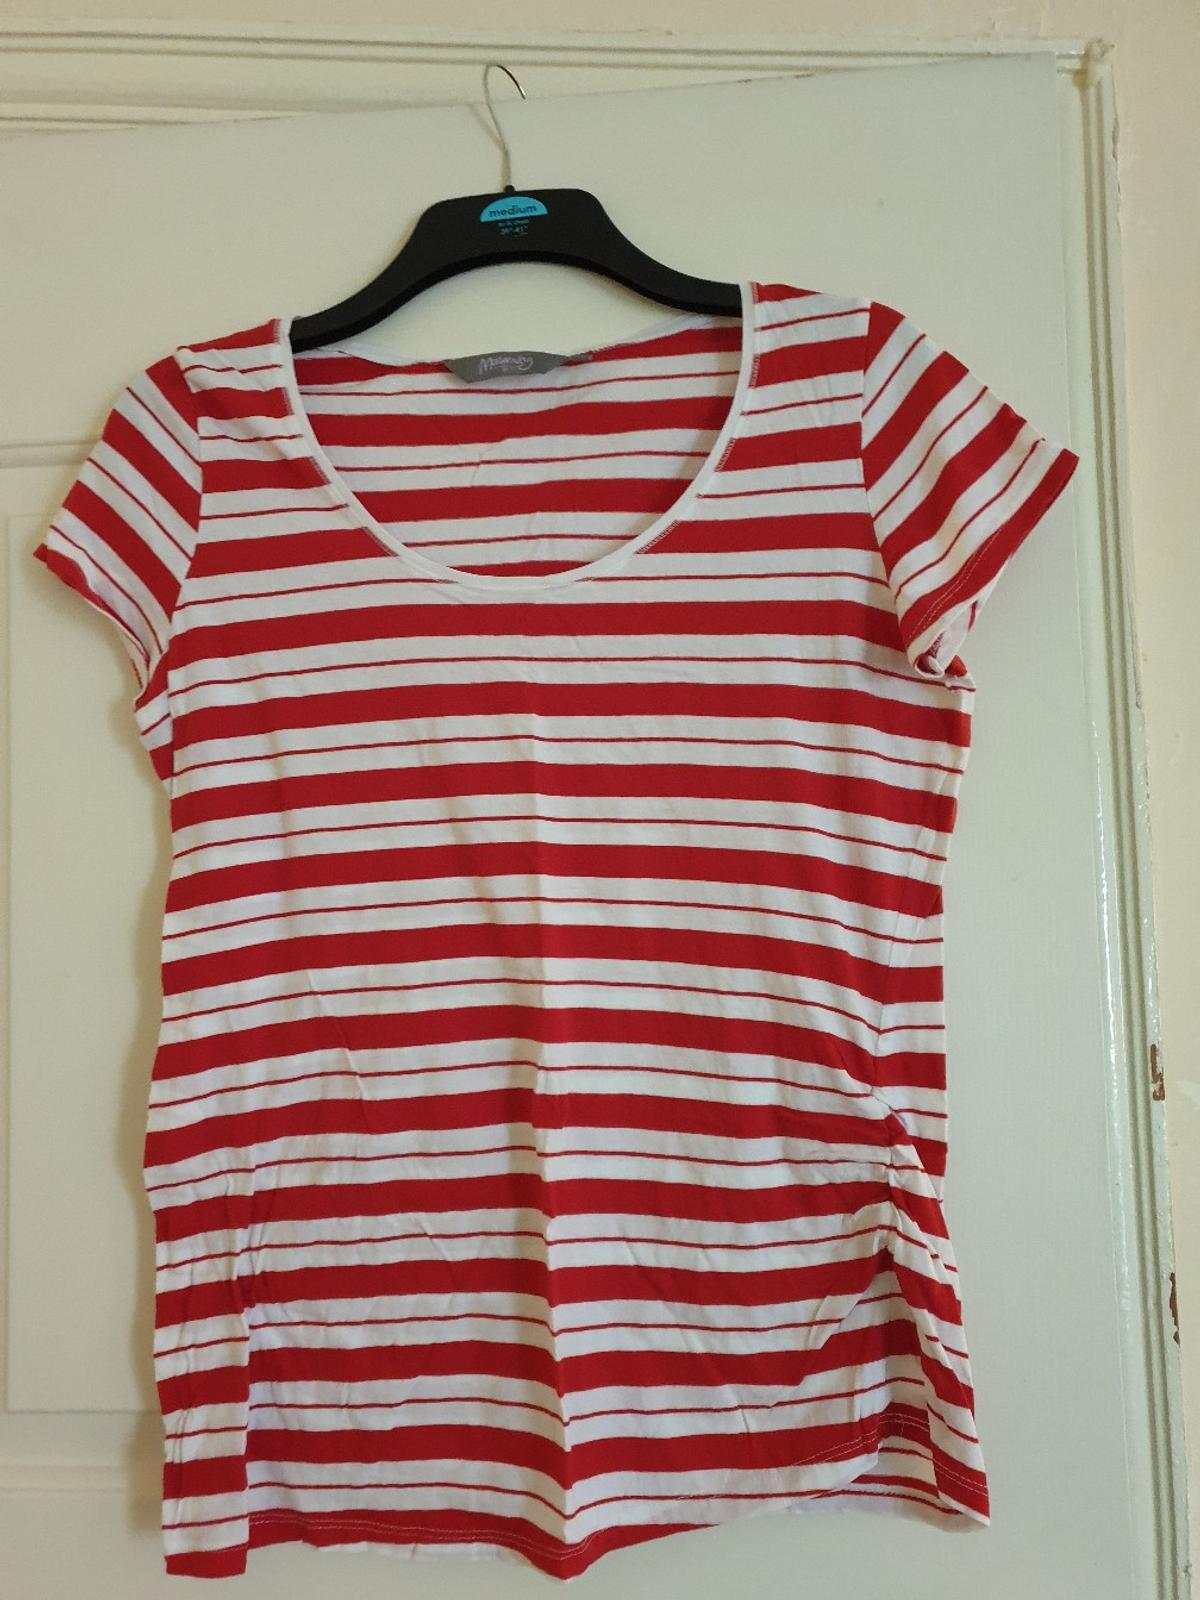 Size 14, New Look Maternity tshirts, great condition, all 3 for £5